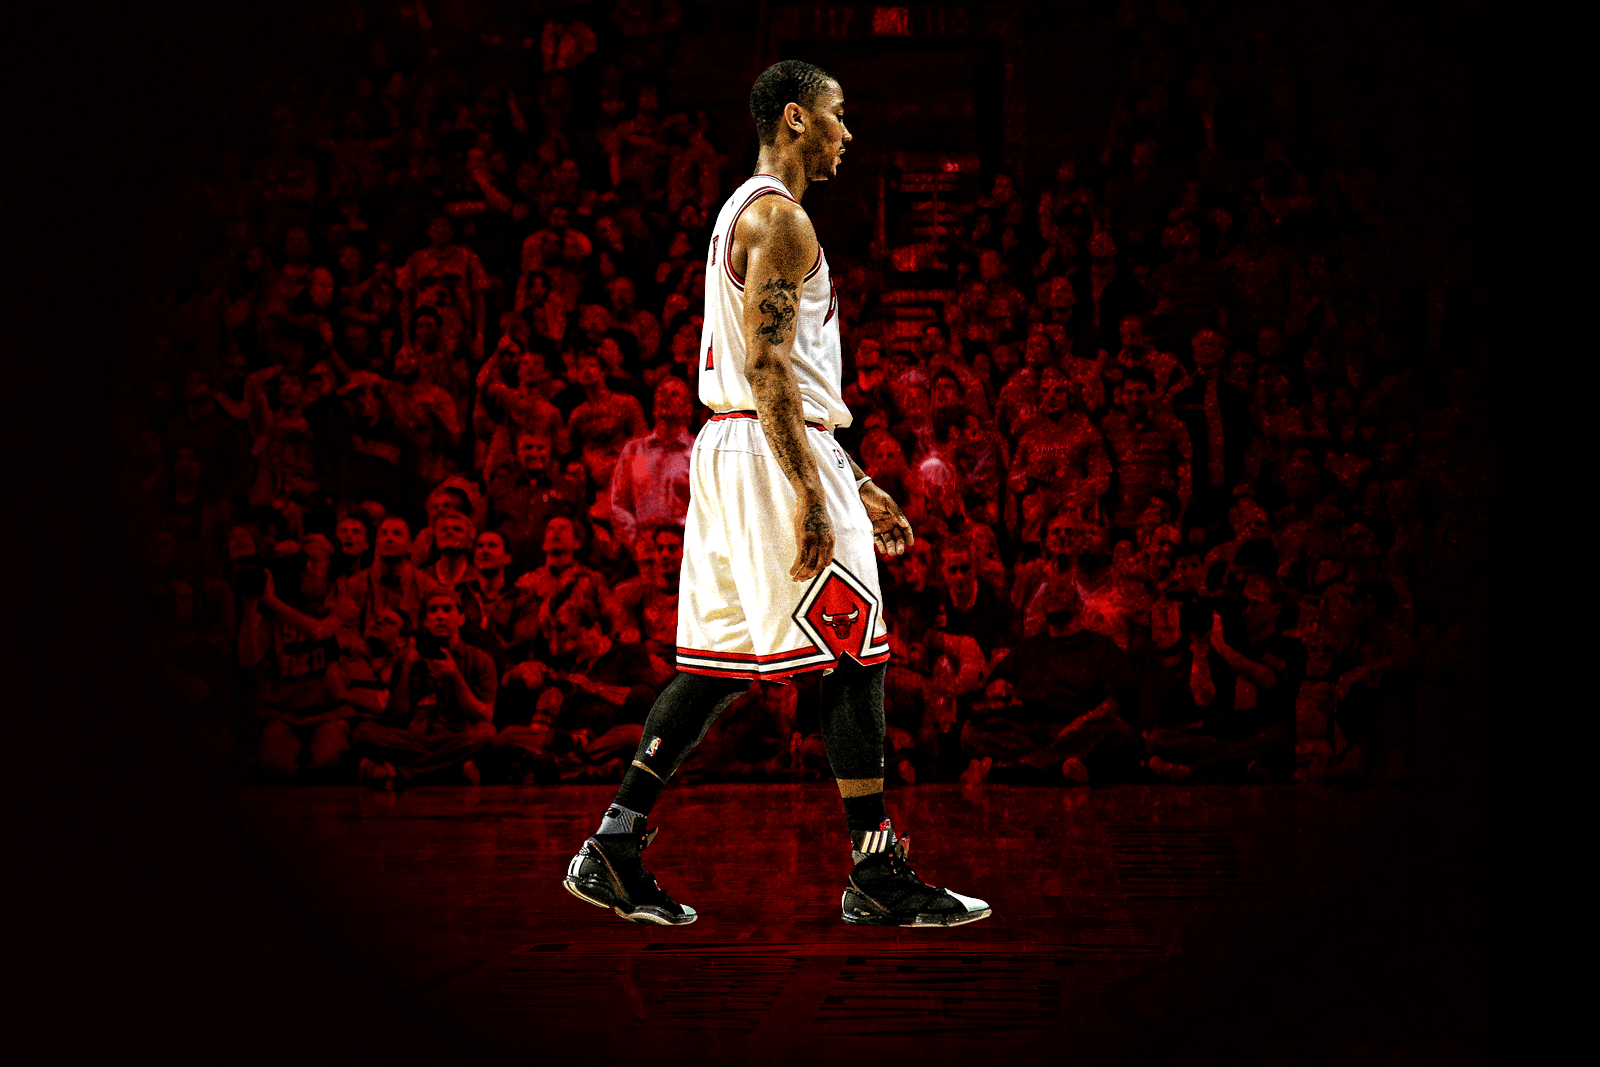 Derrick Rose Wallpapers 2016 HD 1600x1067